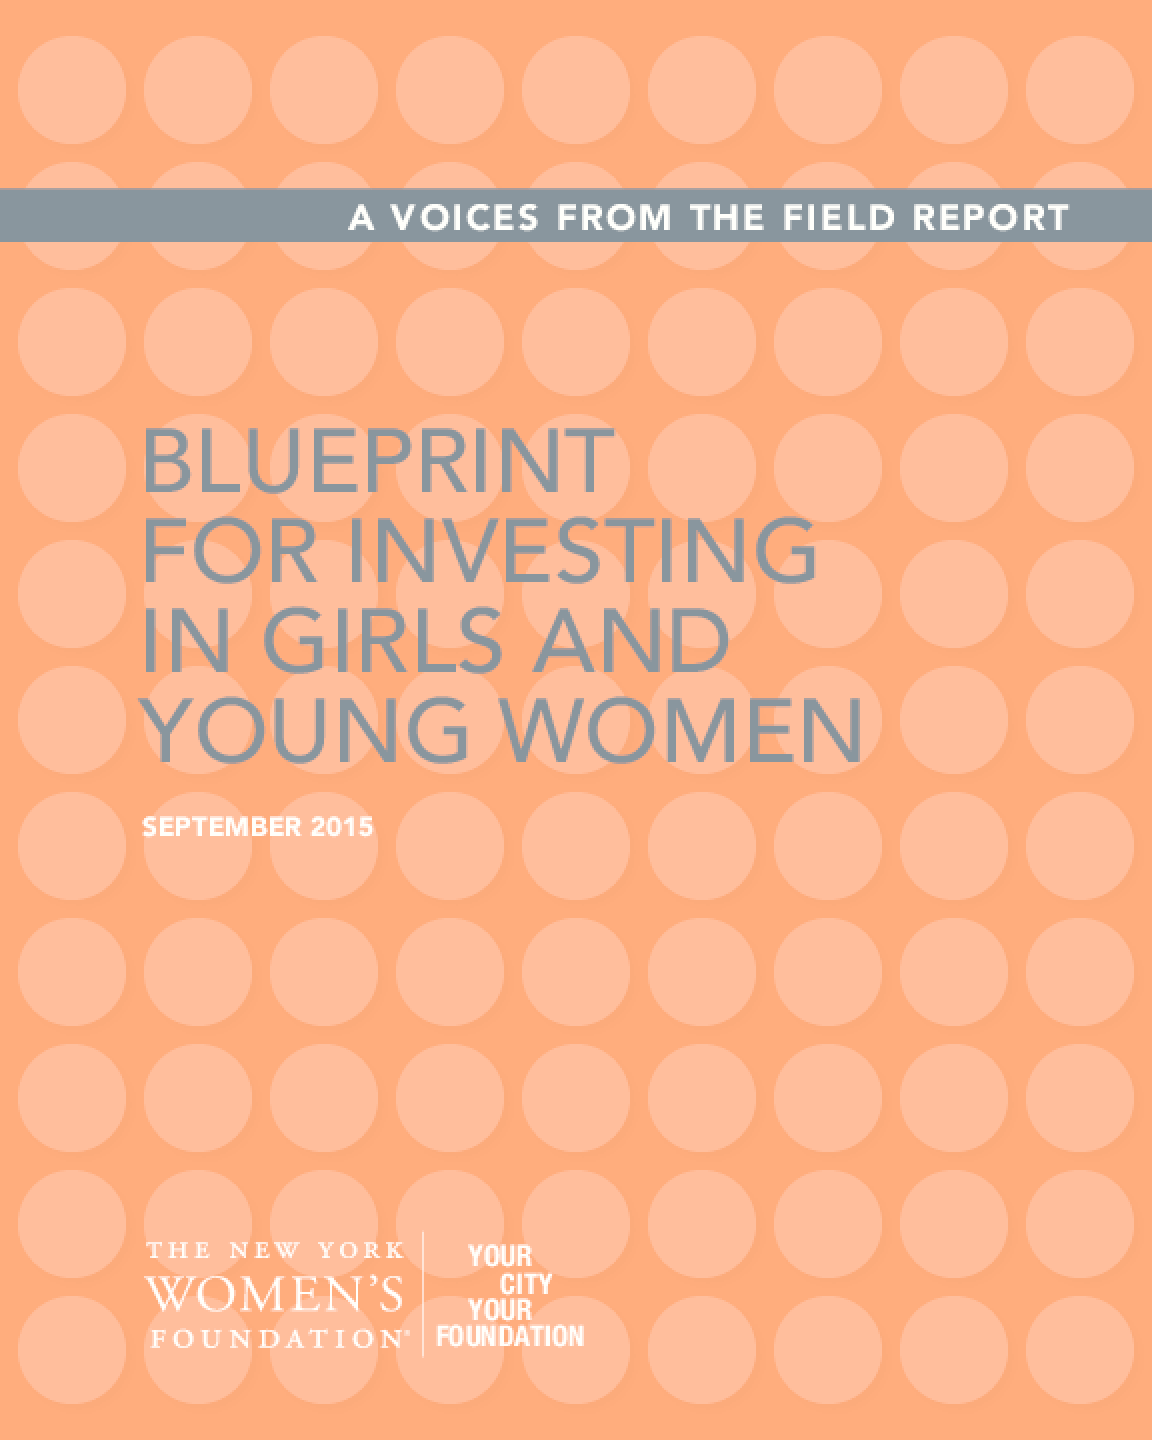 Blueprint for Investing in Girls and Young Women